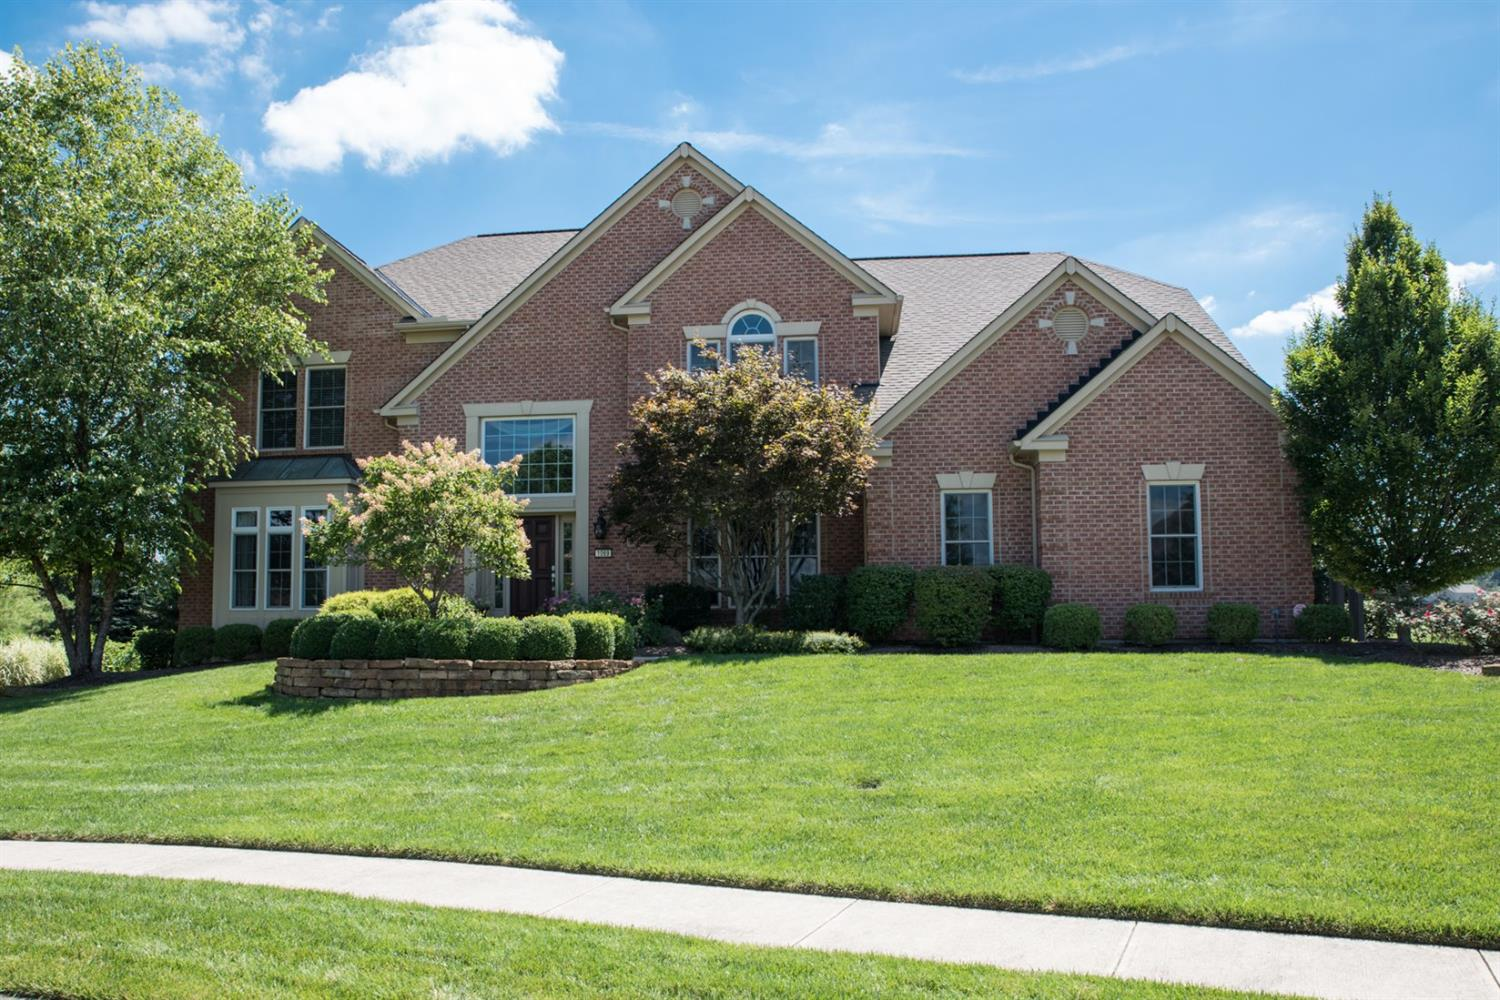 1069 Oasis Pointe Drive, Miami Twp, OH 45140